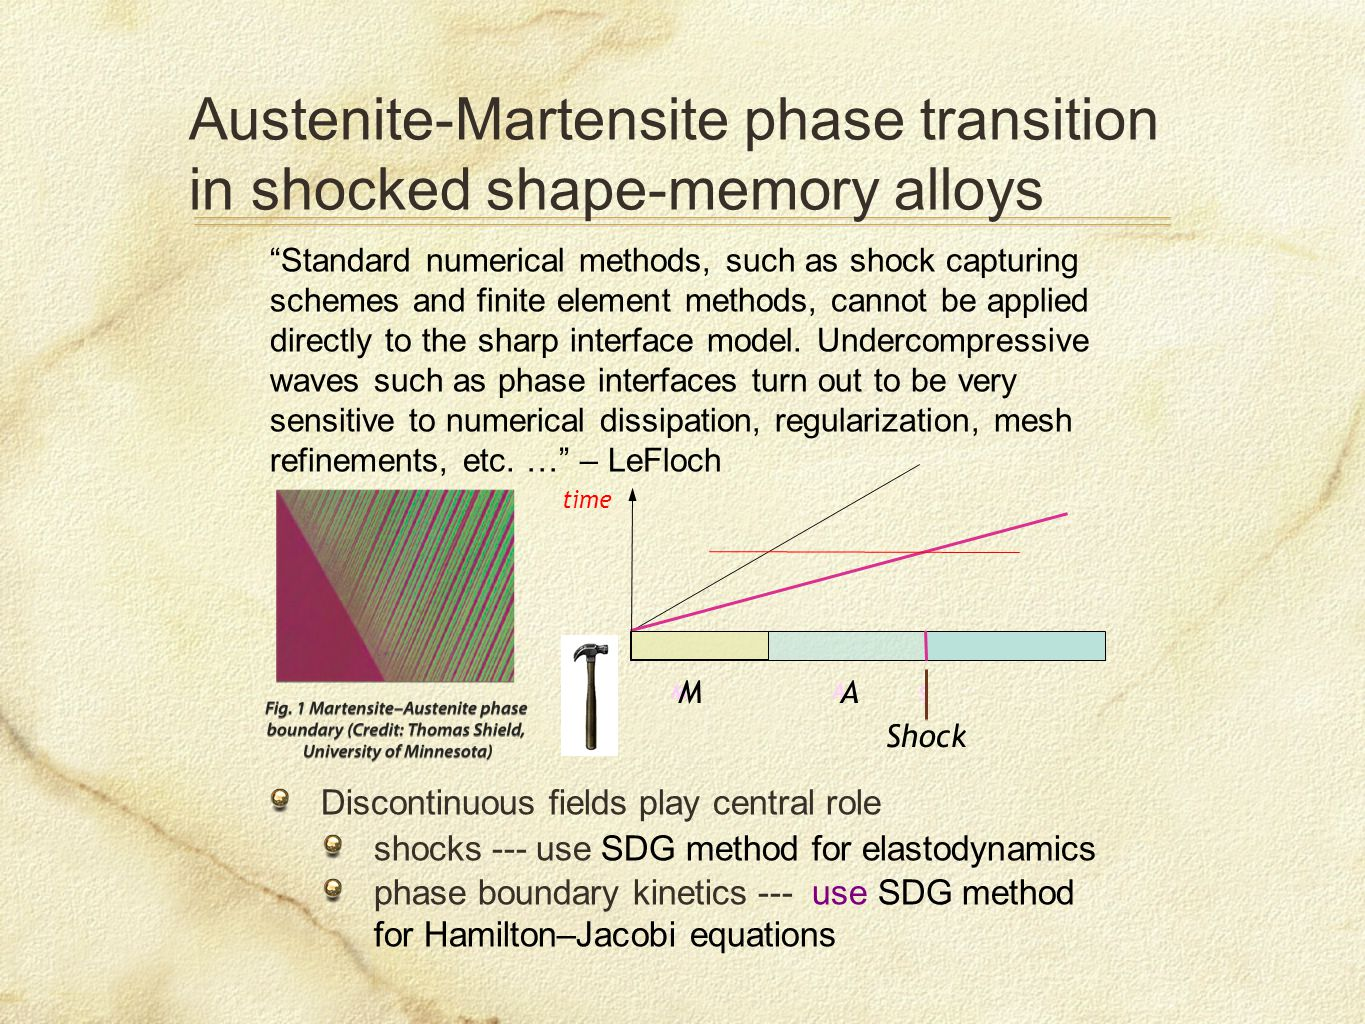 Austenite-Martensite phase transition in shocked shape-memory alloys Discontinuous fields play central role shocks --- use SDG method for elastodynamics phase boundary kinetics --- use SDG method for Hamilton–Jacobi equations Standard numerical methods, such as shock capturing schemes and finite element methods, cannot be applied directly to the sharp interface model.